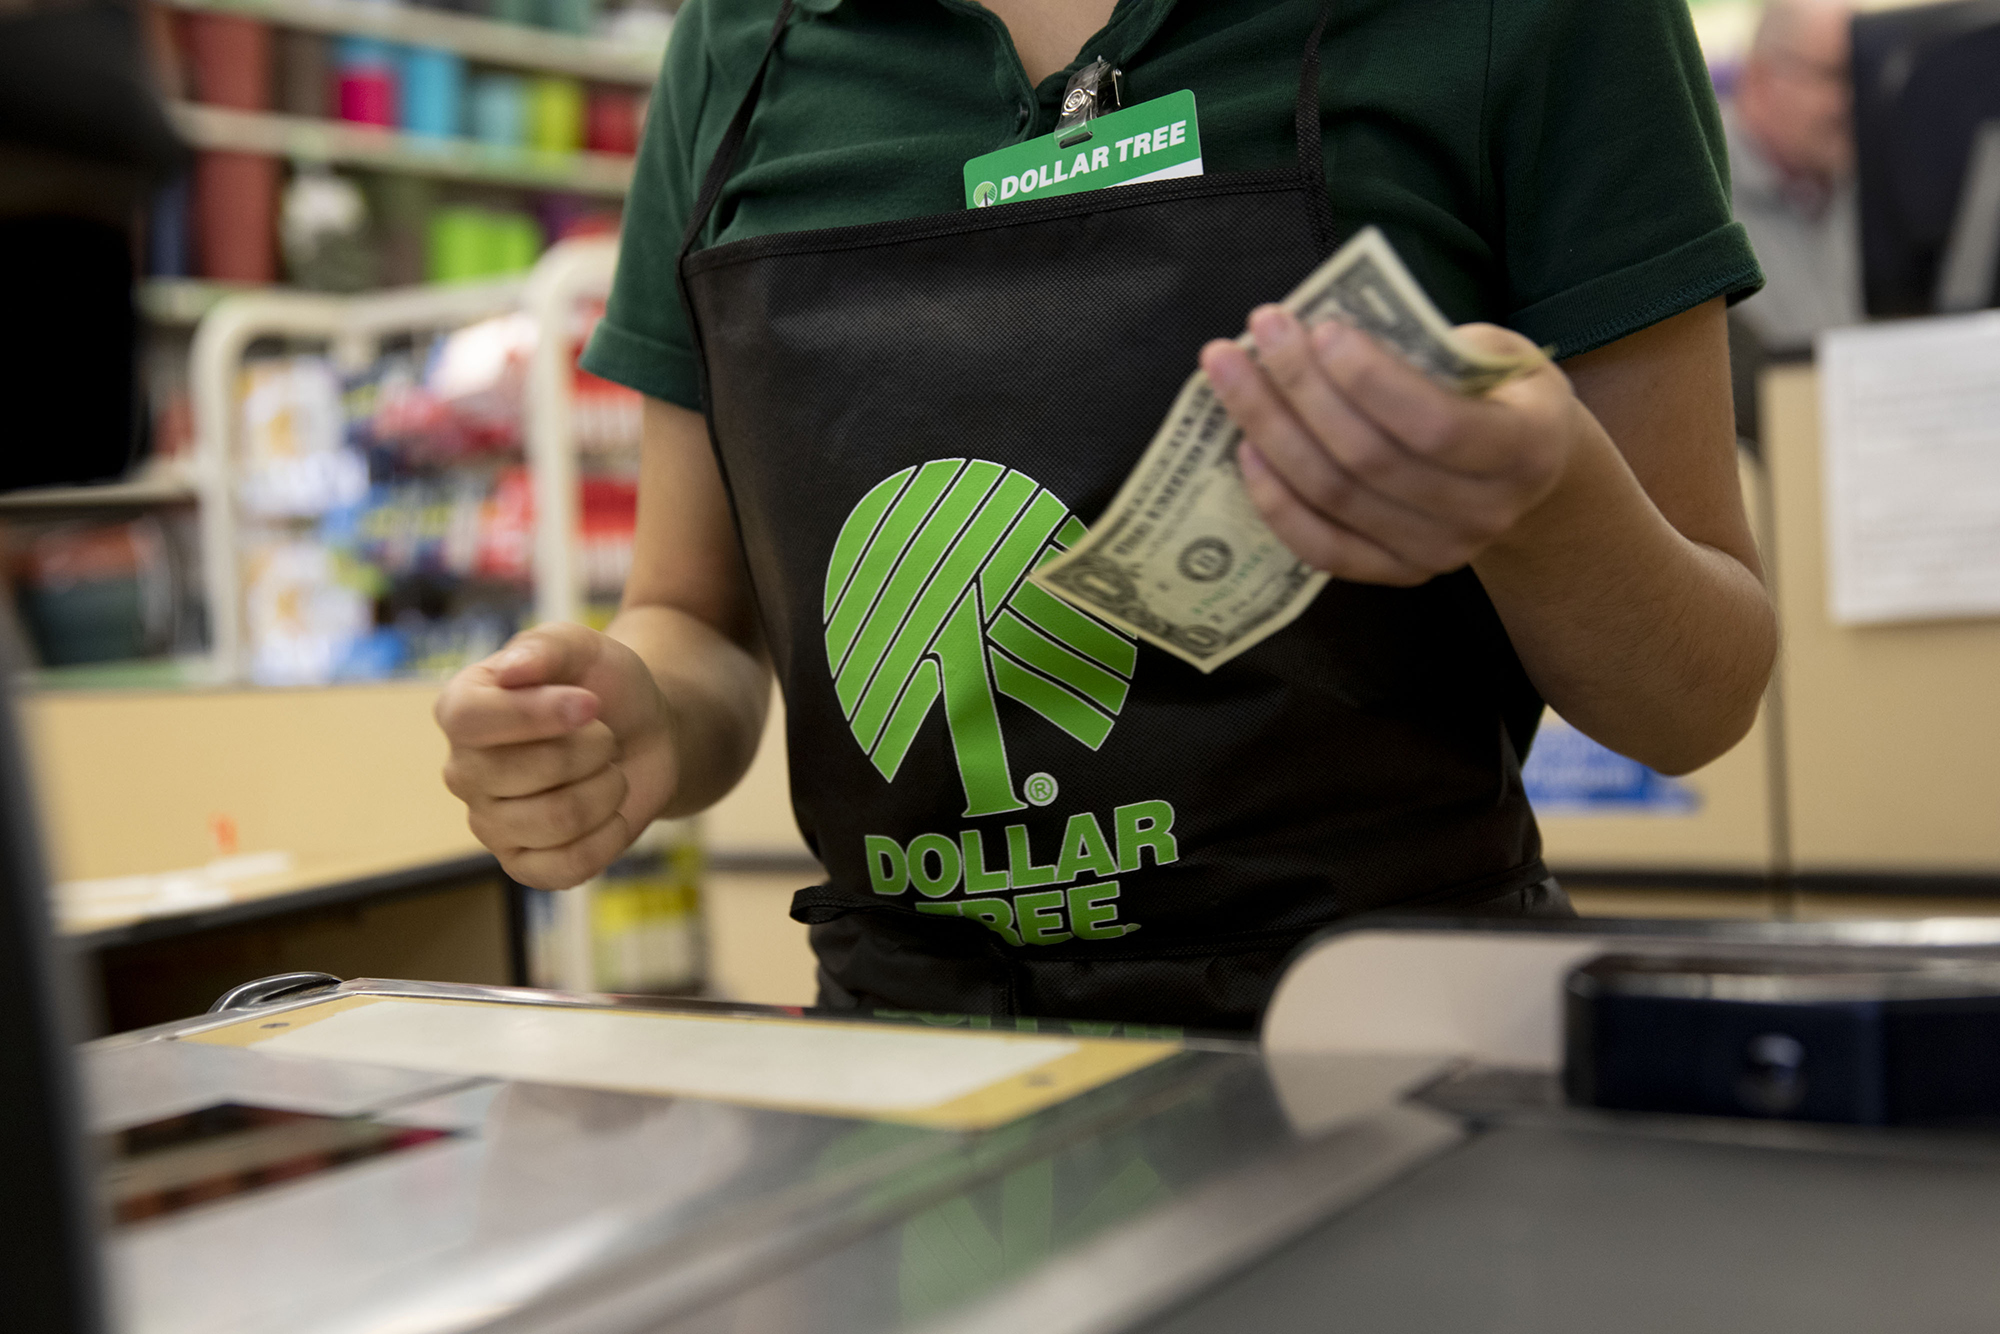 Dollar Tree will open 600 stores this year